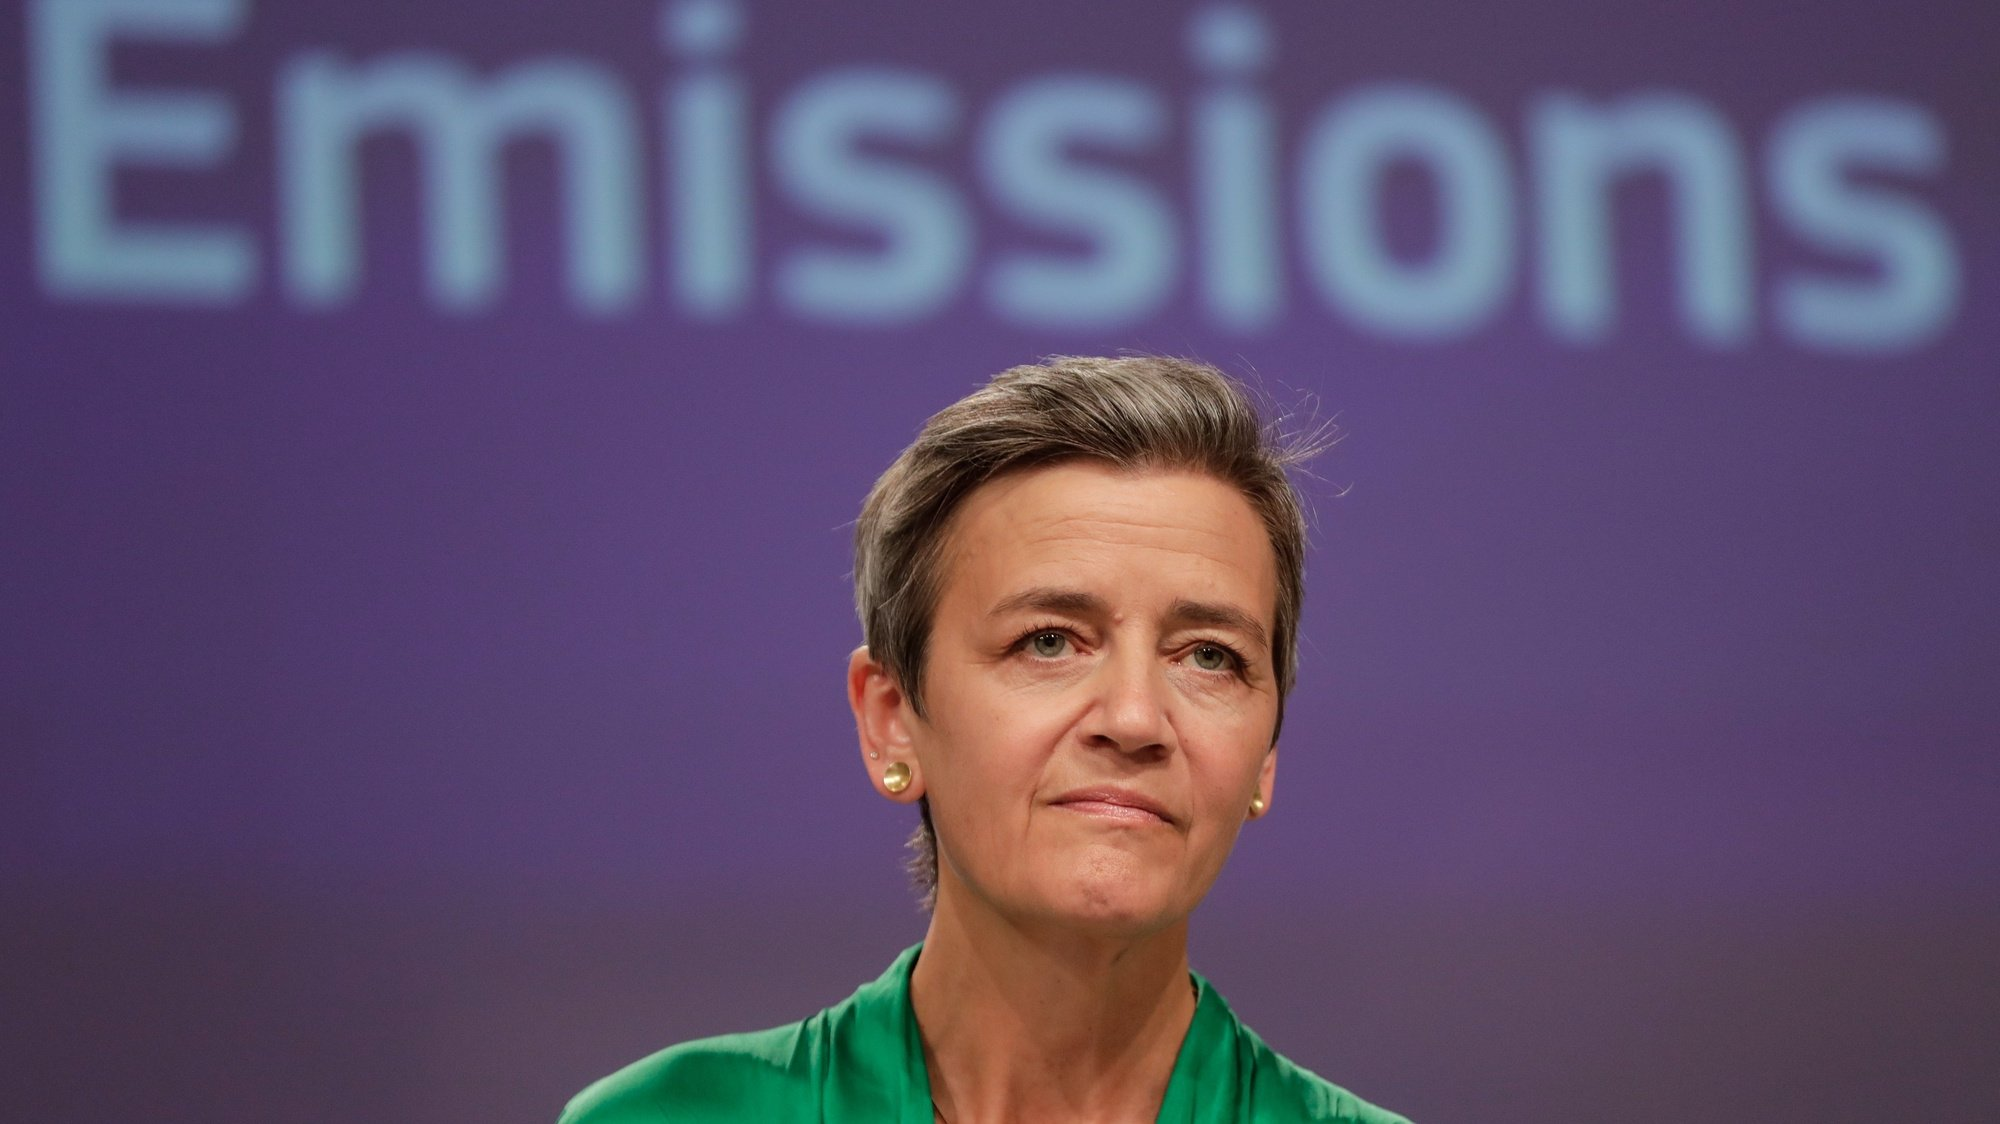 epa09330907 European Commission's executive vice president Margrethe Vestager gives a press conference on an antitrust case, Car Emissions Cartel, at the European Commission, in Brussels, Belgium, 08 July 2021.  EPA/STEPHANIE LECOCQ